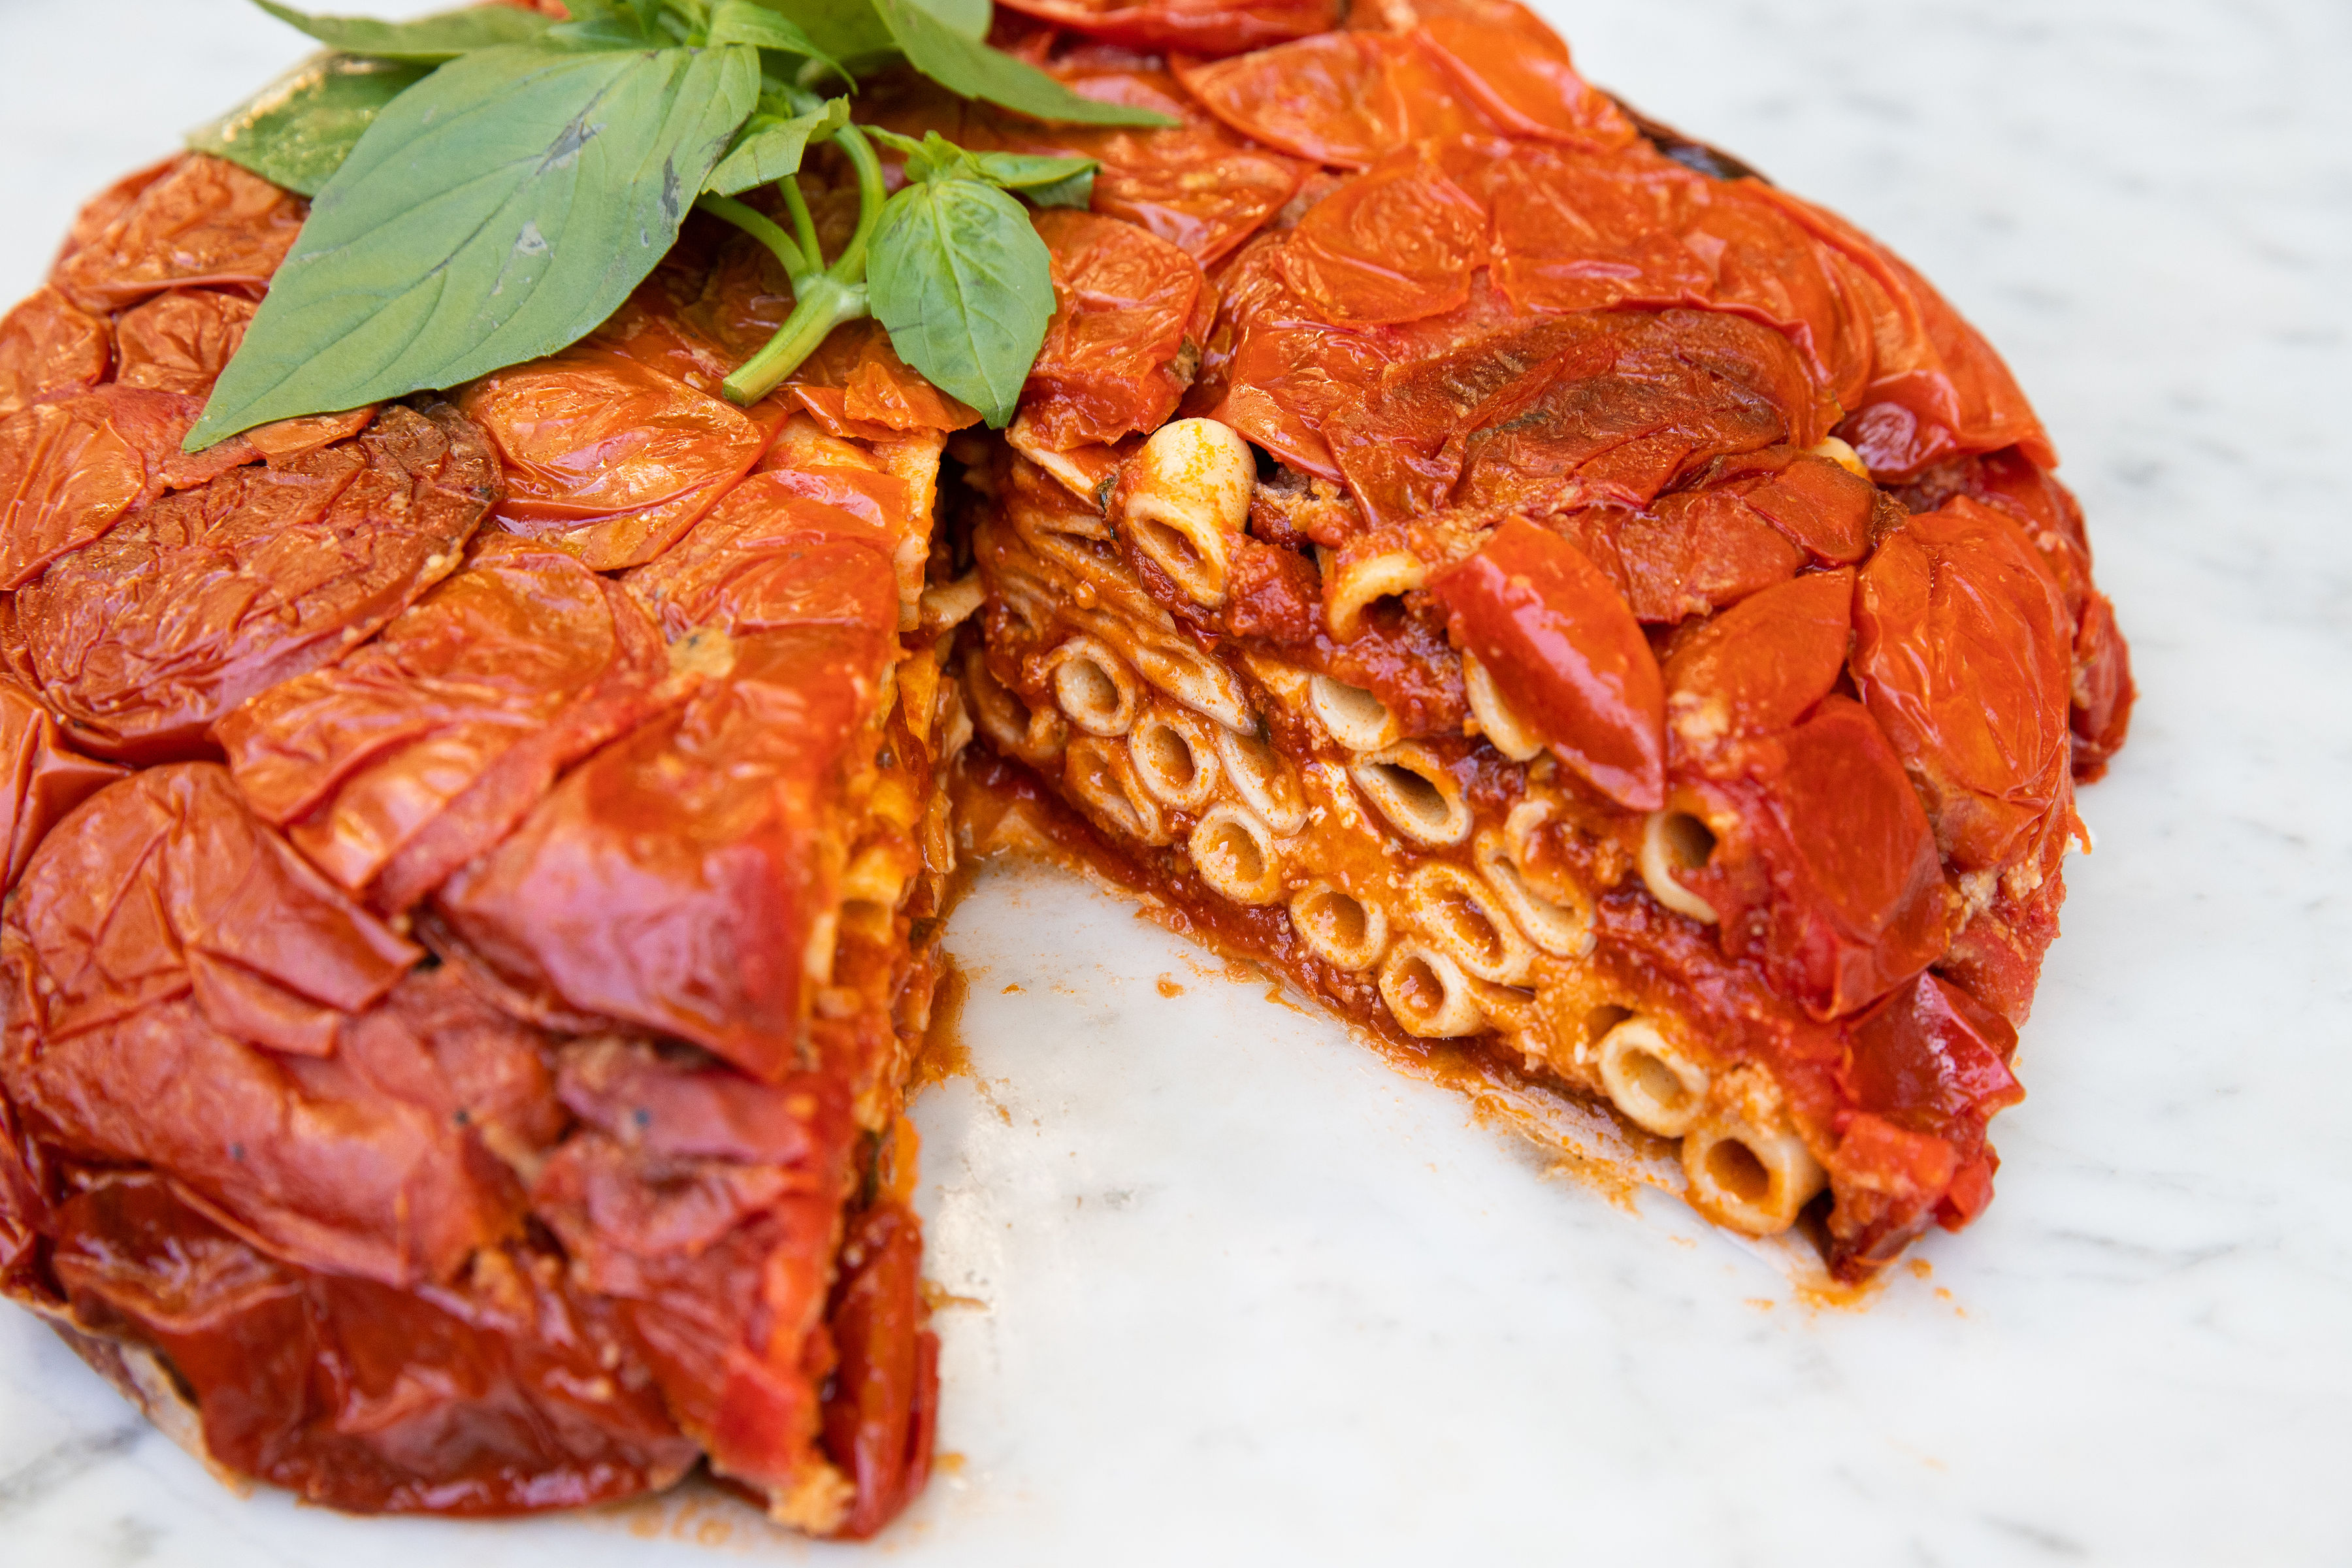 A big round cake of baked ziti in tomato sauce with a slice cut out